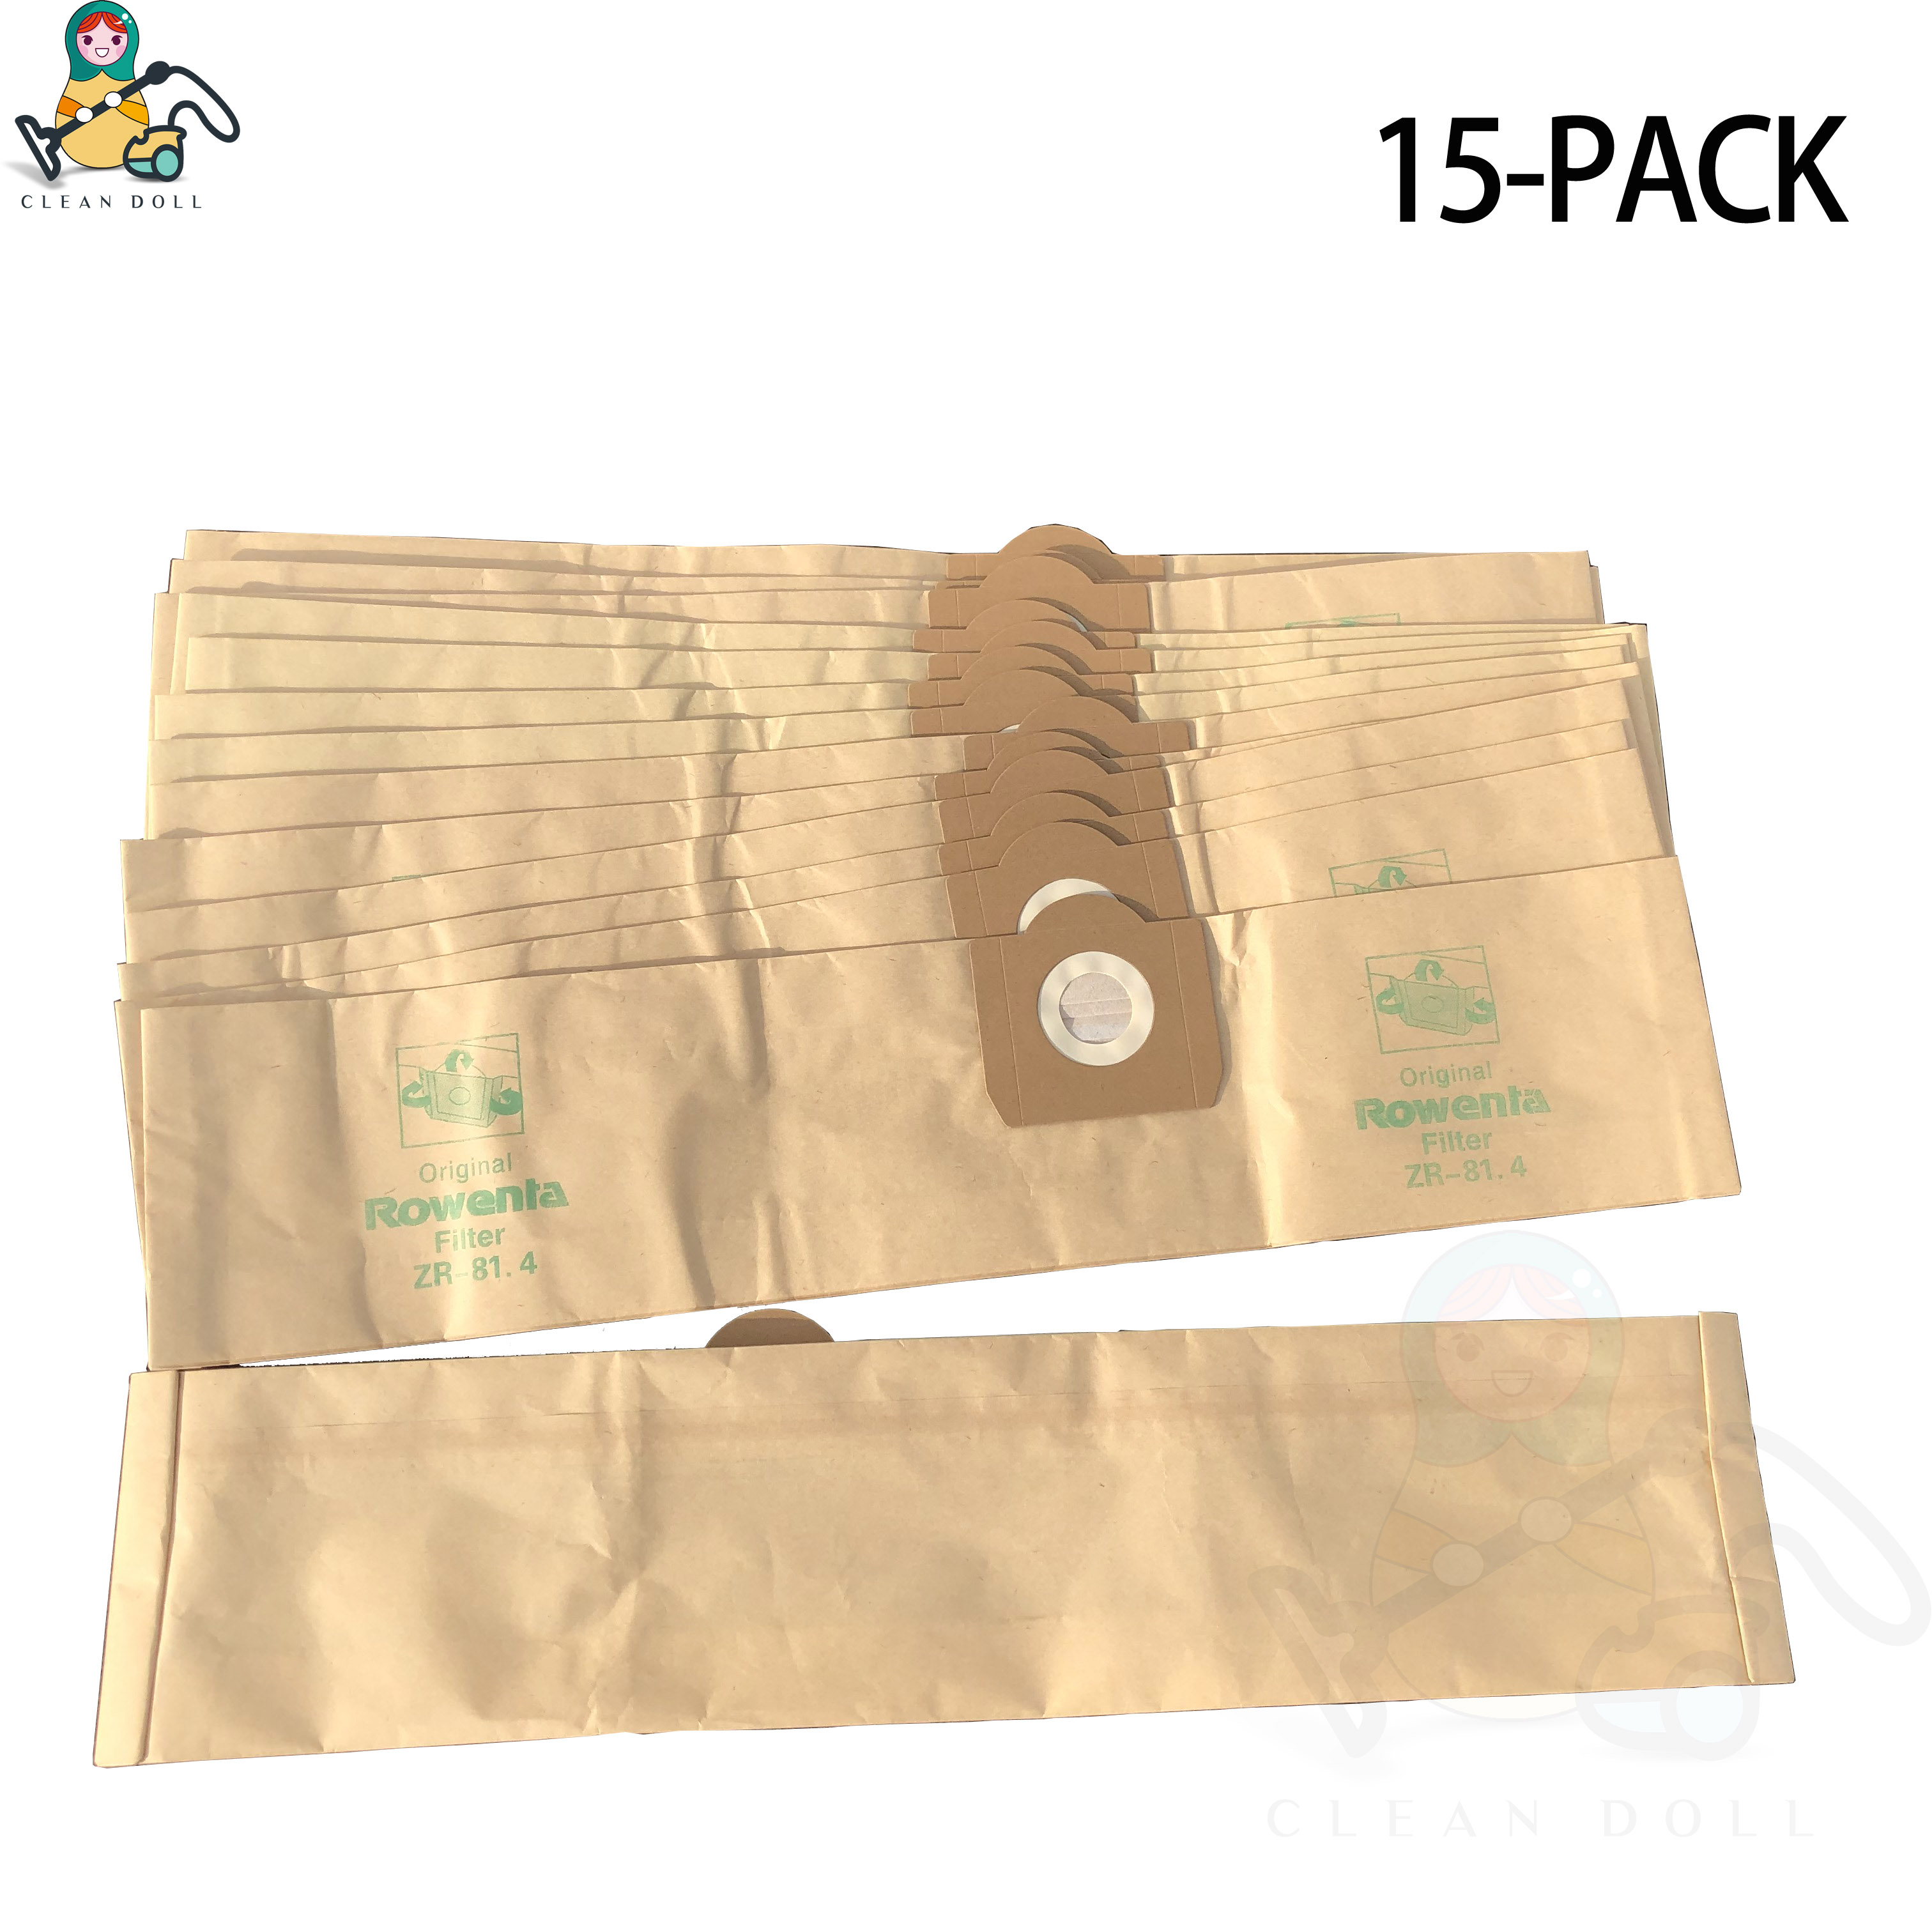 Replacement Bags For Karcher Cleaner Bags For Vacuum Cleaner Karcher Wd3 WD3200 WD3300 WD3.500P MV3 SE4001 A2200-A2299 6.959-130